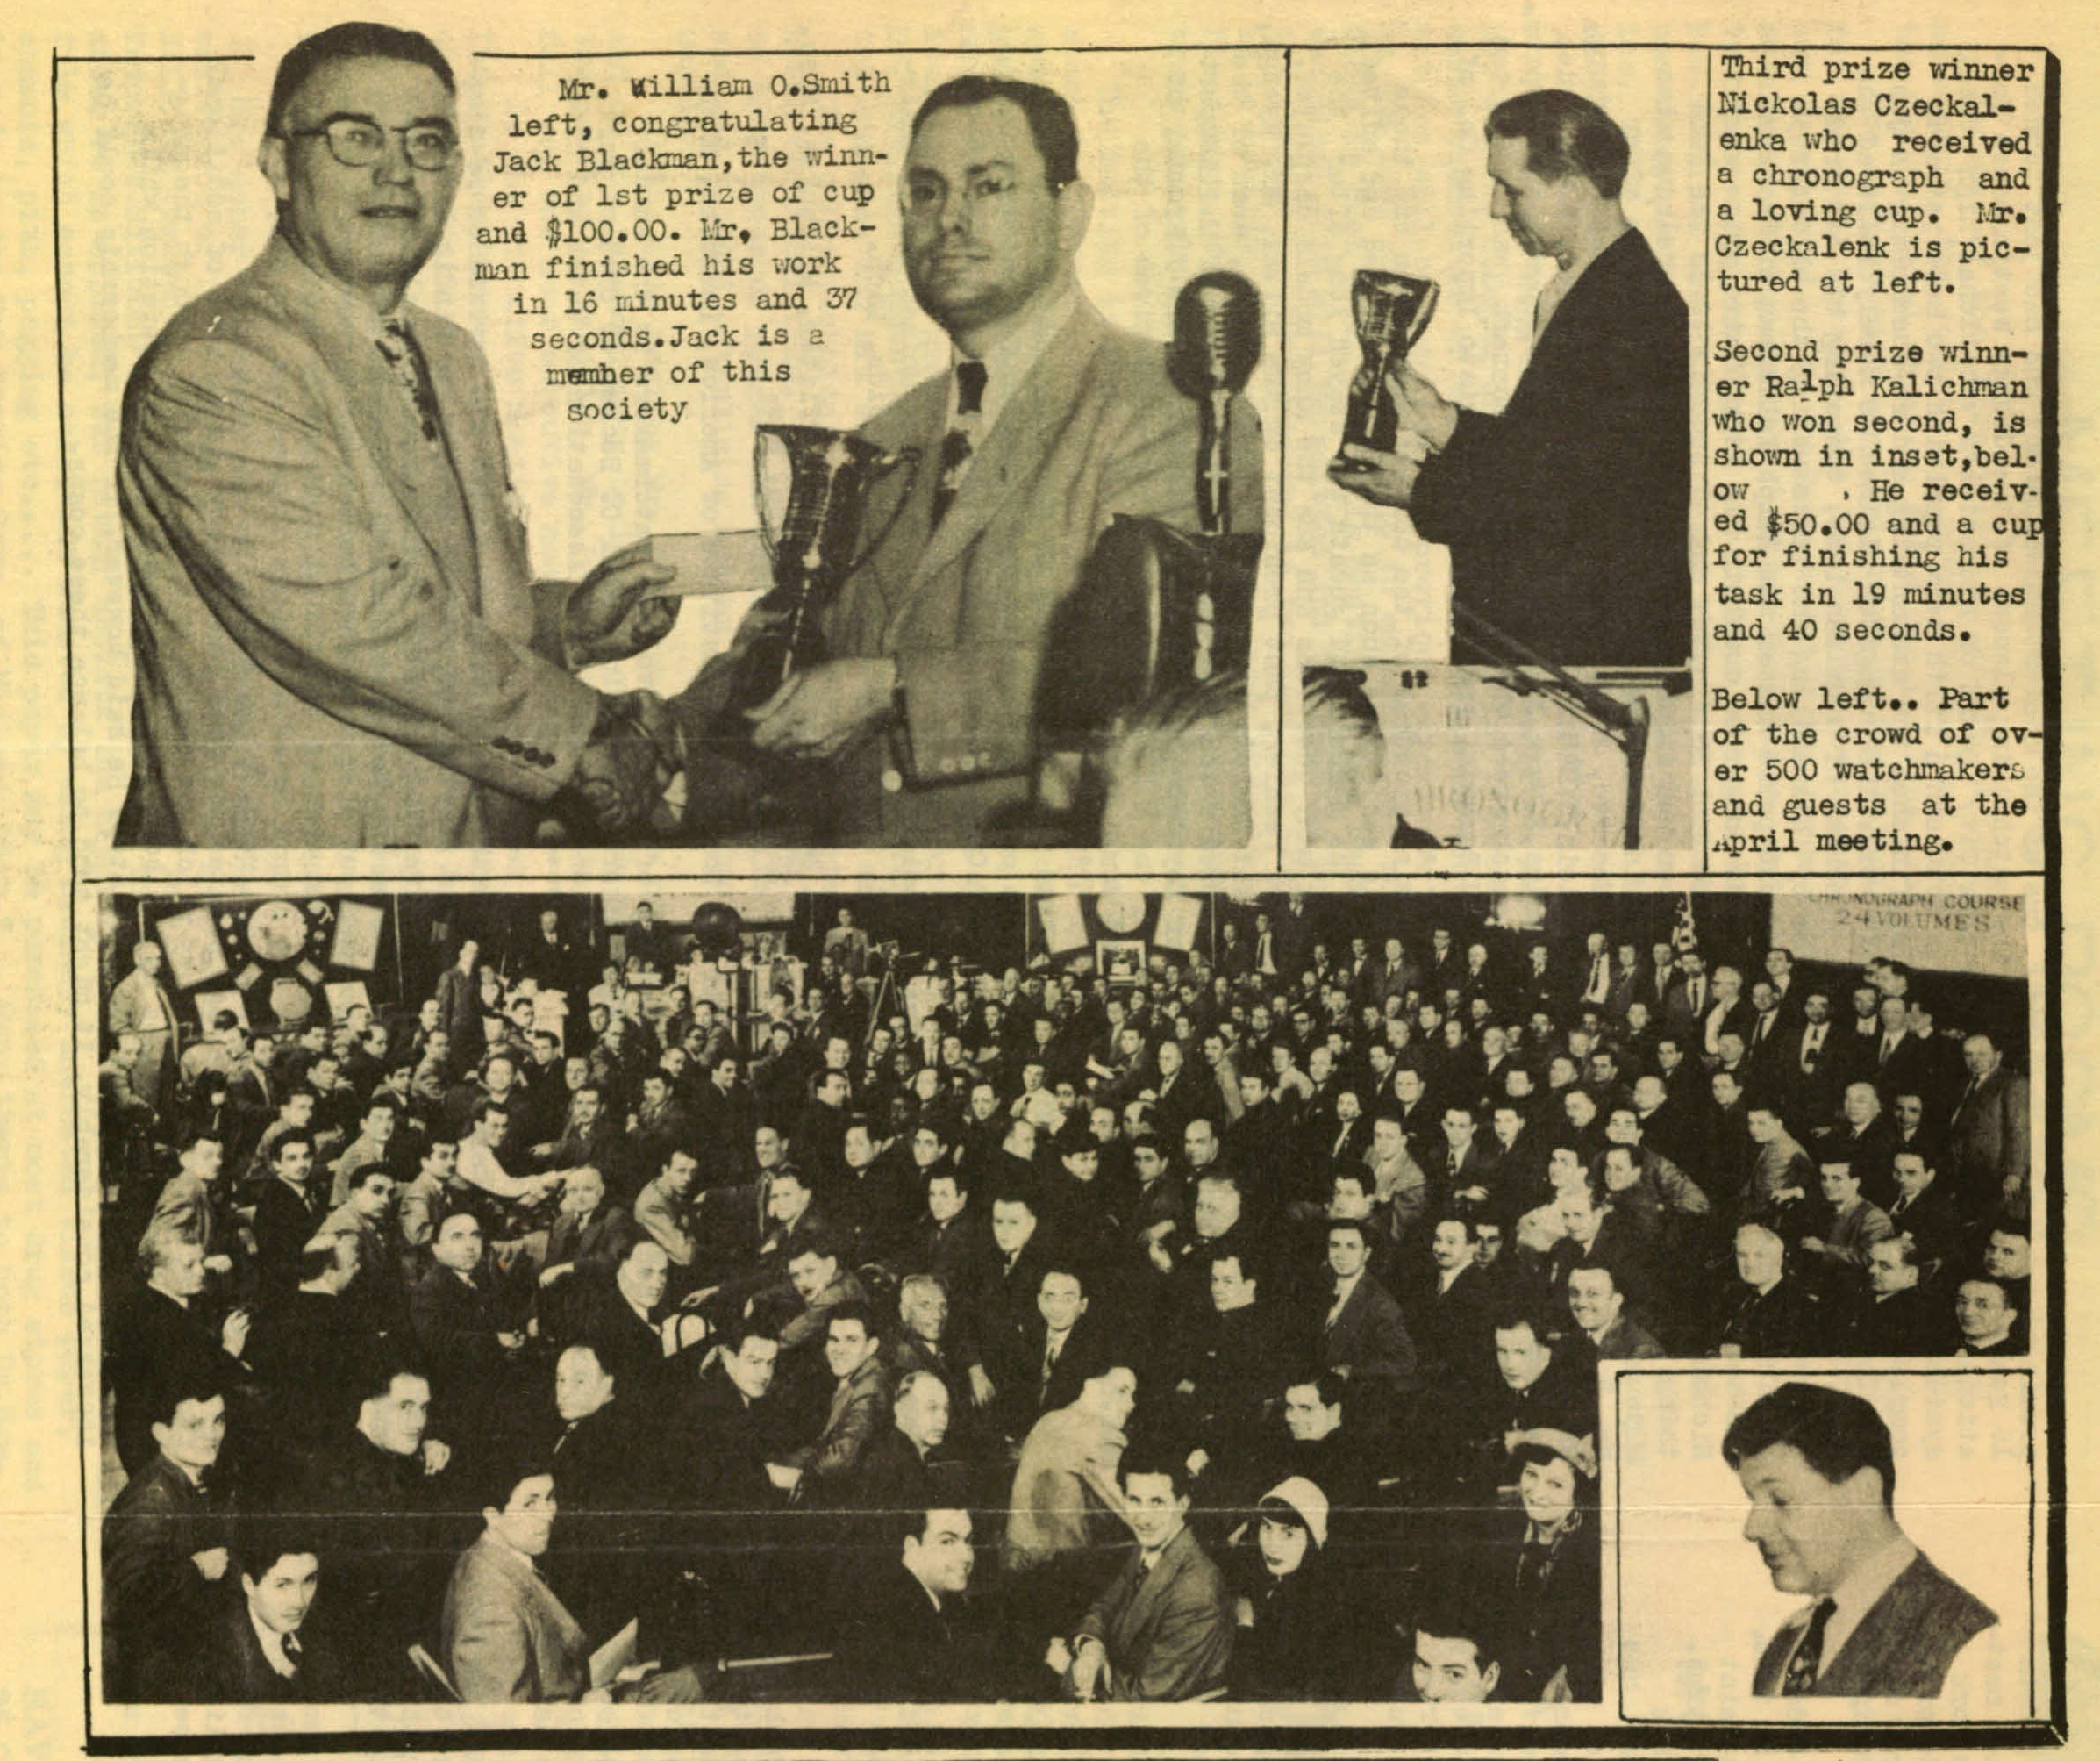 """Take a look at the caption for the lower photograph: """"Part of the crowd of over 500 watchmakers and guests at the April [1950] meeting."""" Wow!"""